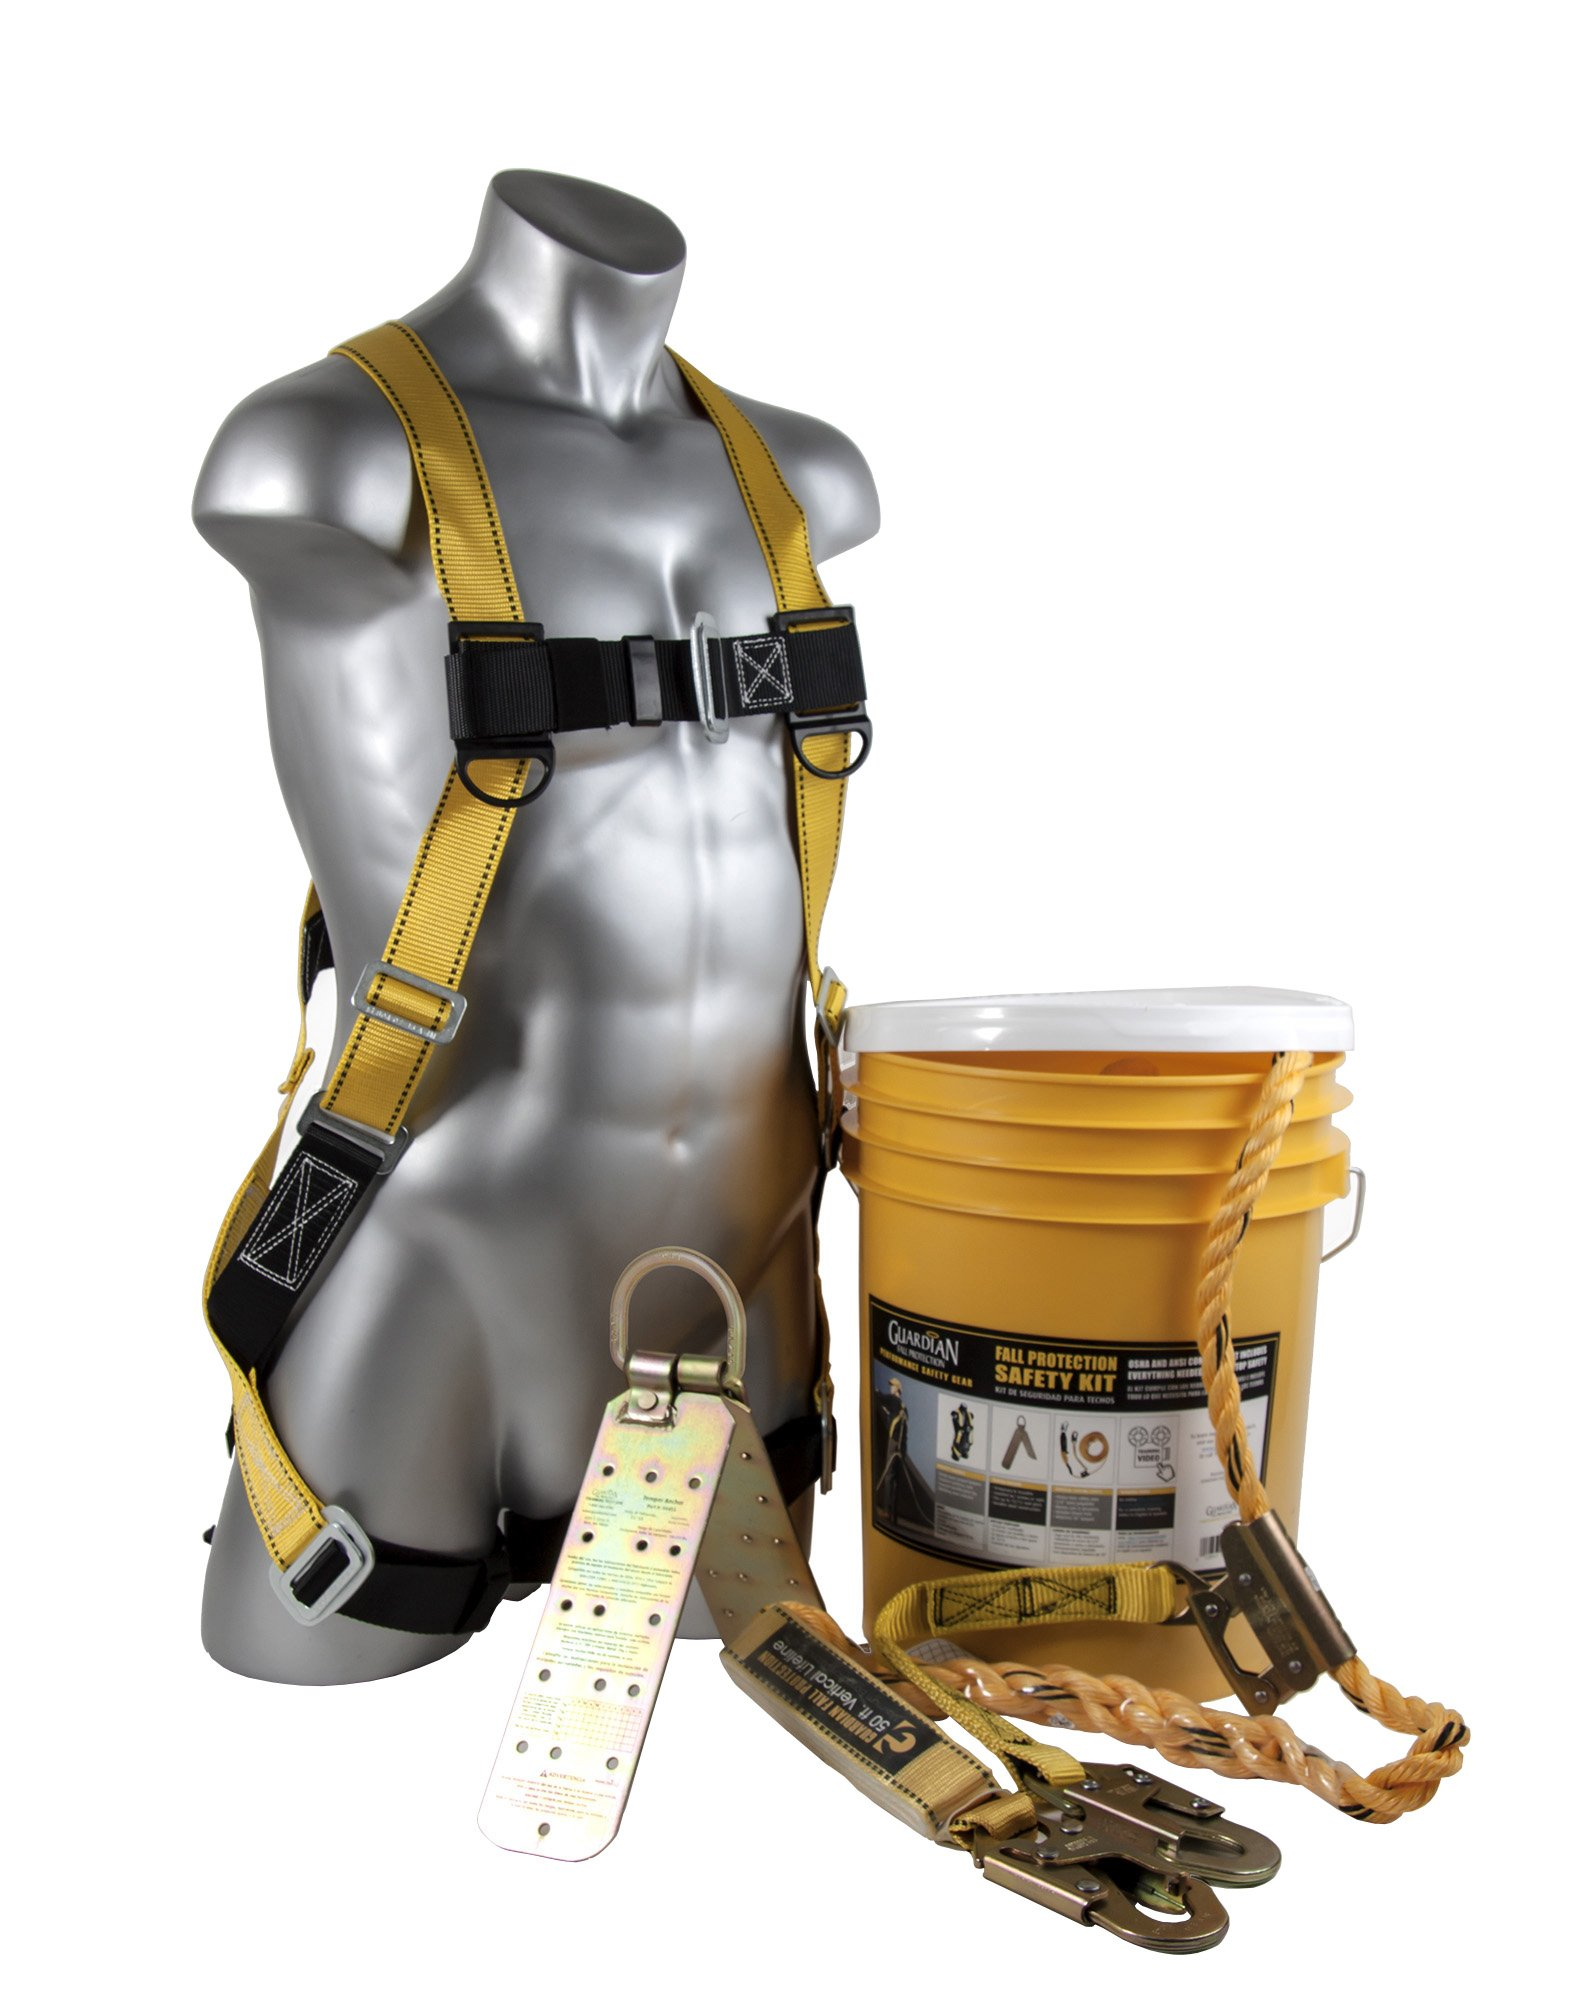 Guardian Fall Protection (Qualcraft) 00815 BOS-T50 Bucket of Safe-Tie with Temper Anchor, 50-Foot Vertical Lifeline Assembly and HUV by Guardian Fall Protection